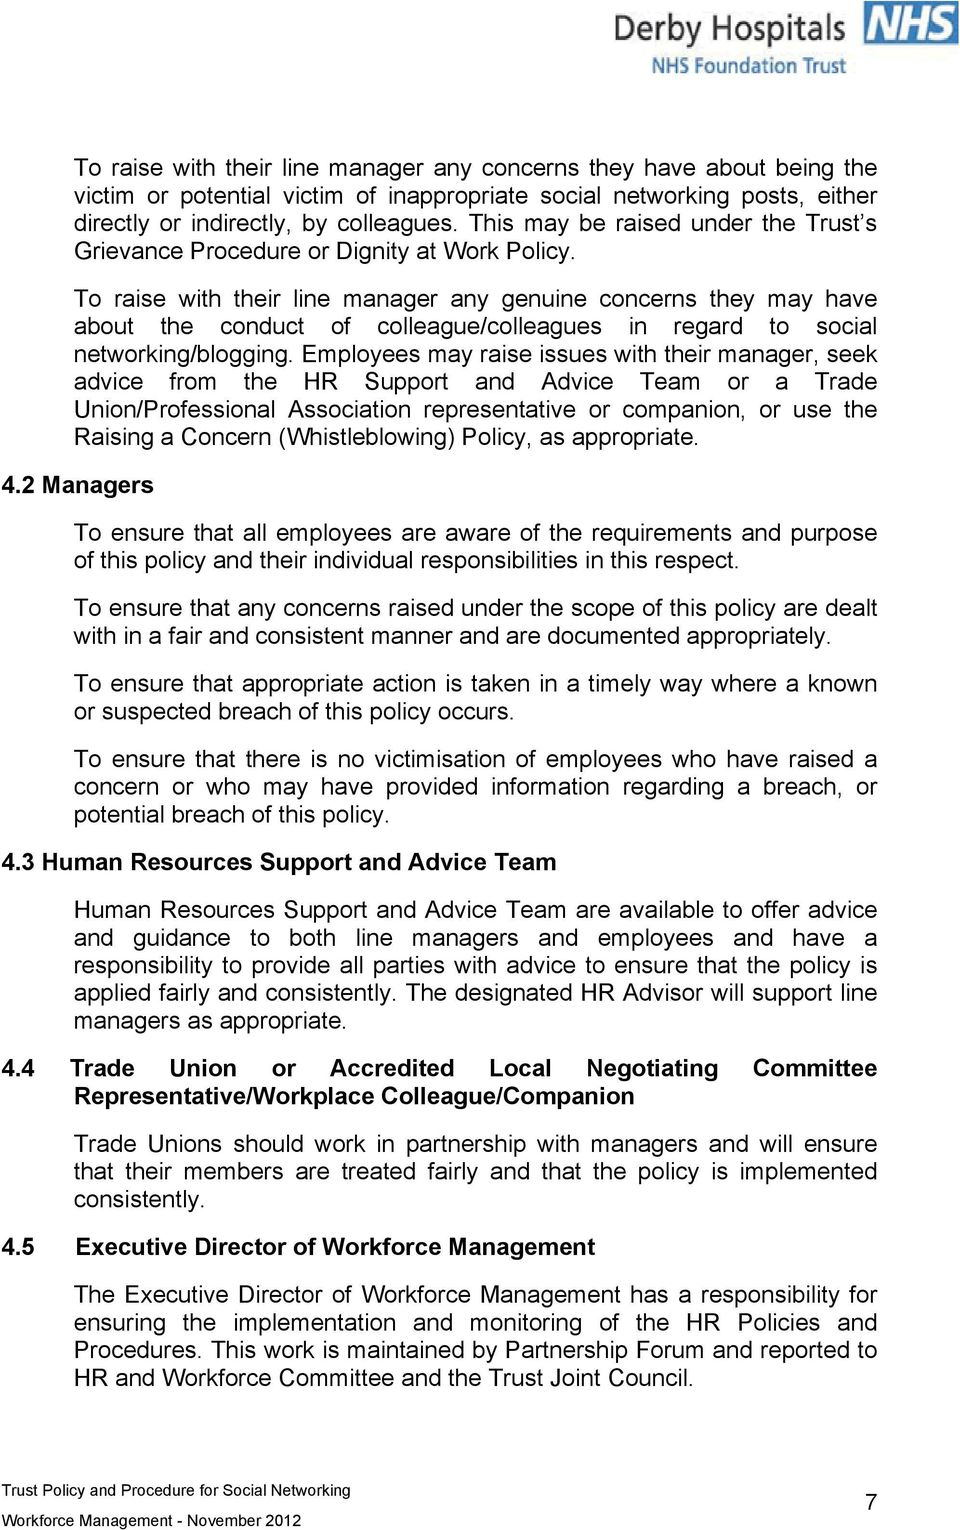 To raise with their line manager any genuine concerns they may have about the conduct of colleague/colleagues in regard to social networking/blogging.